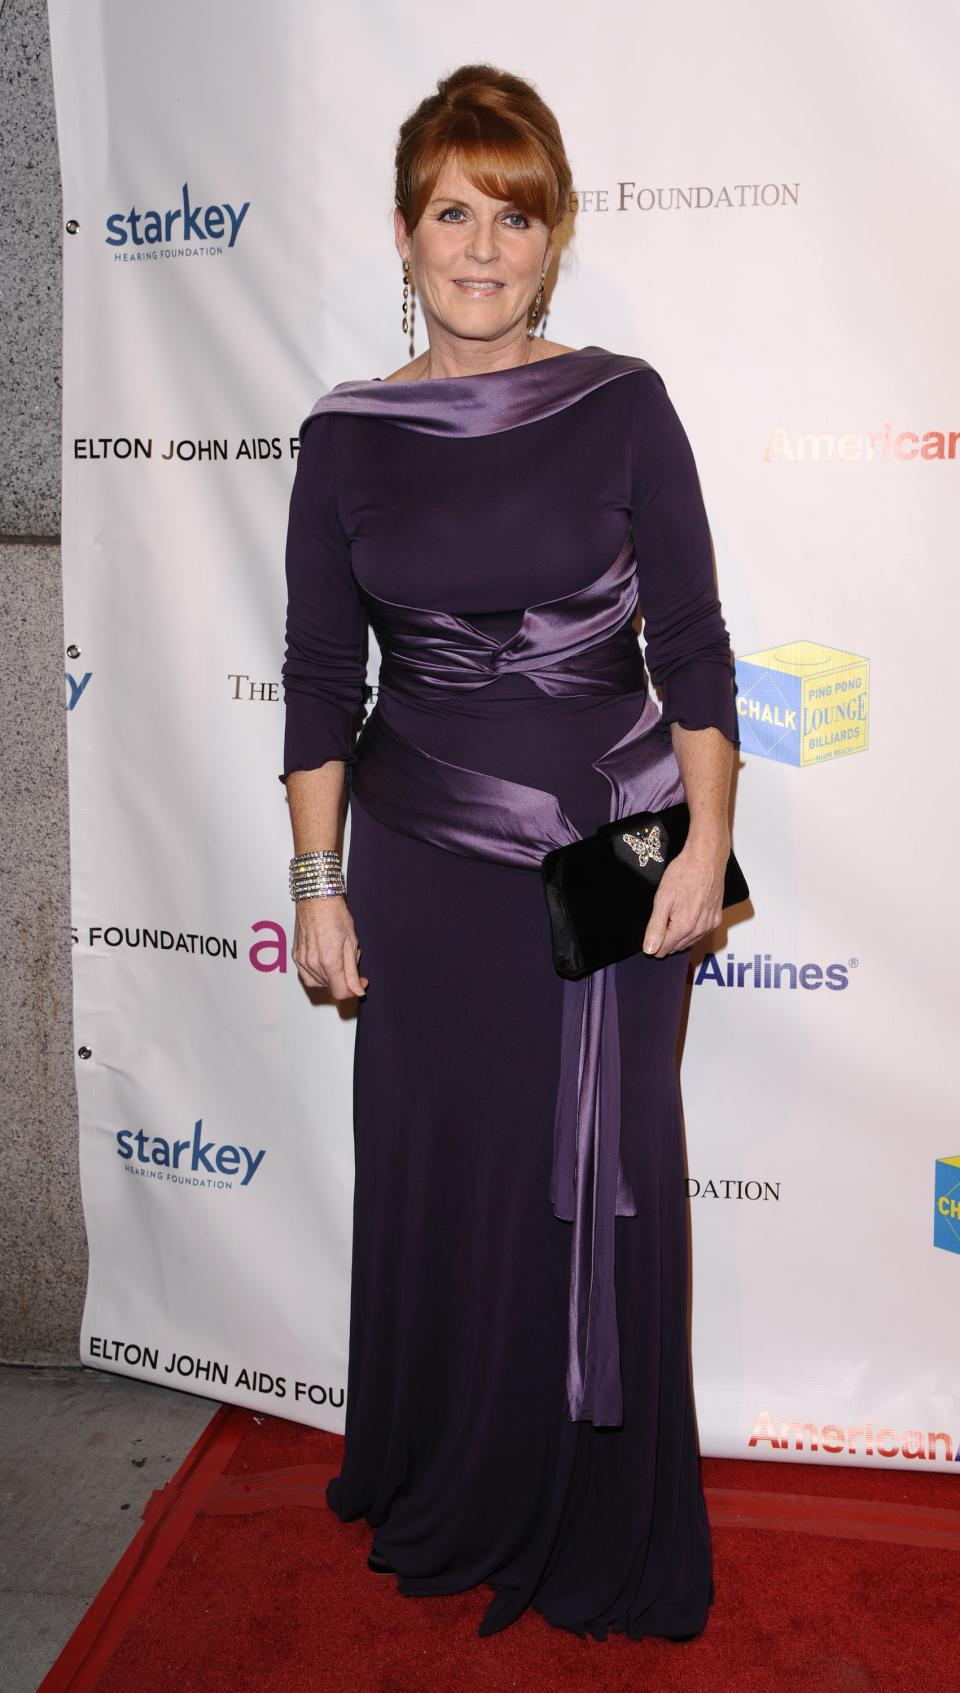 Sarah Ferguson attends the Elton John AIDS Foundation 10th Annual Enduring Vision Benefit, on Wednesday, Oct. 26, 2011, in New York. (AP Photo/Peter Kramer)